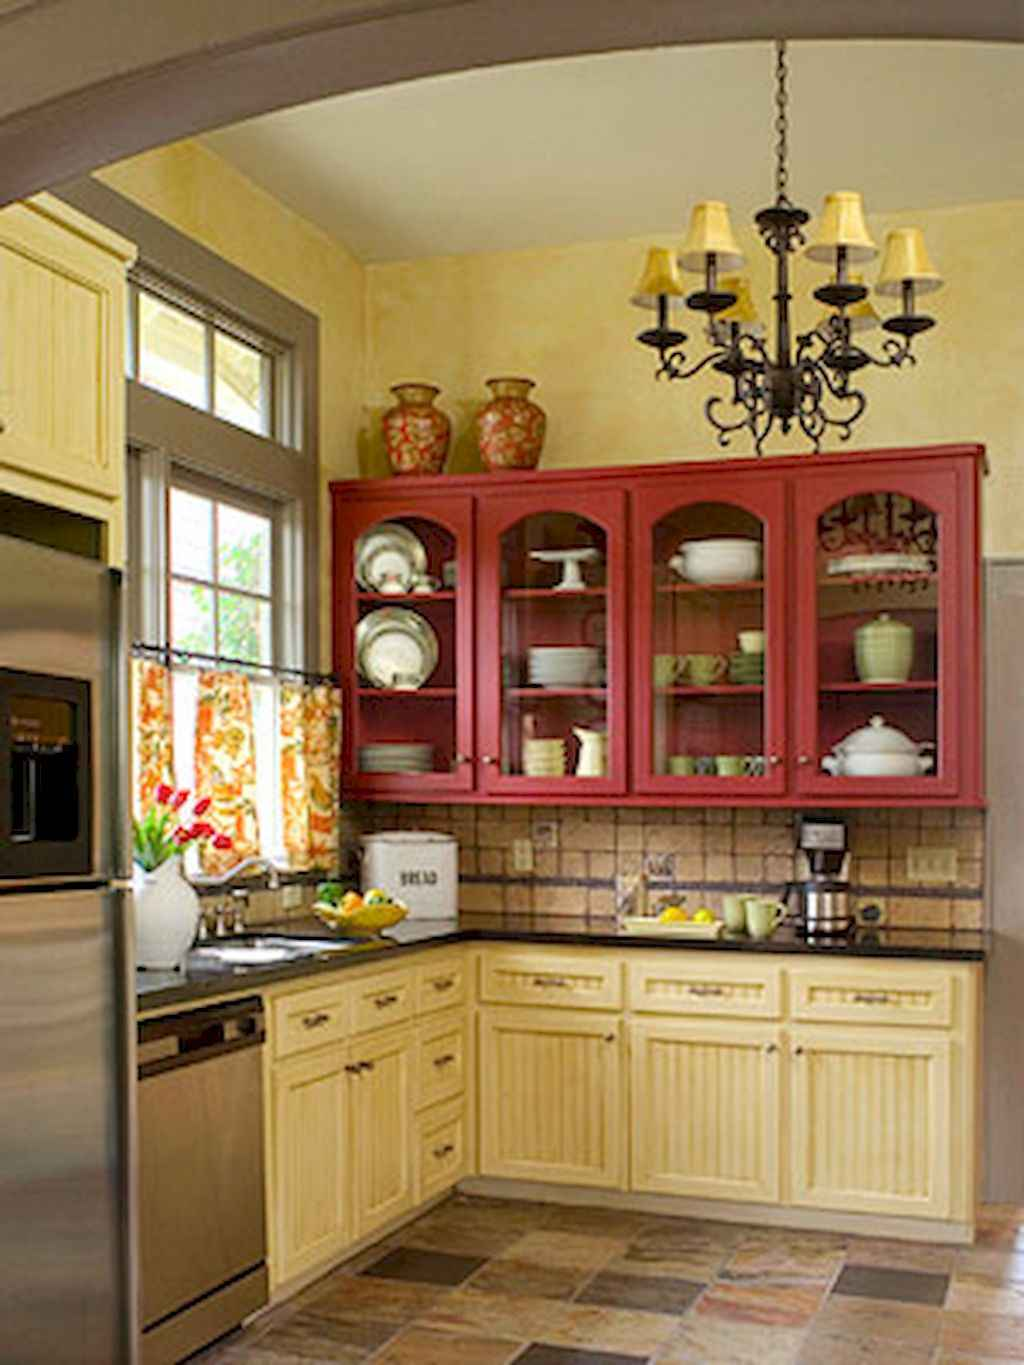 Incredible french country kitchen design ideas (1)